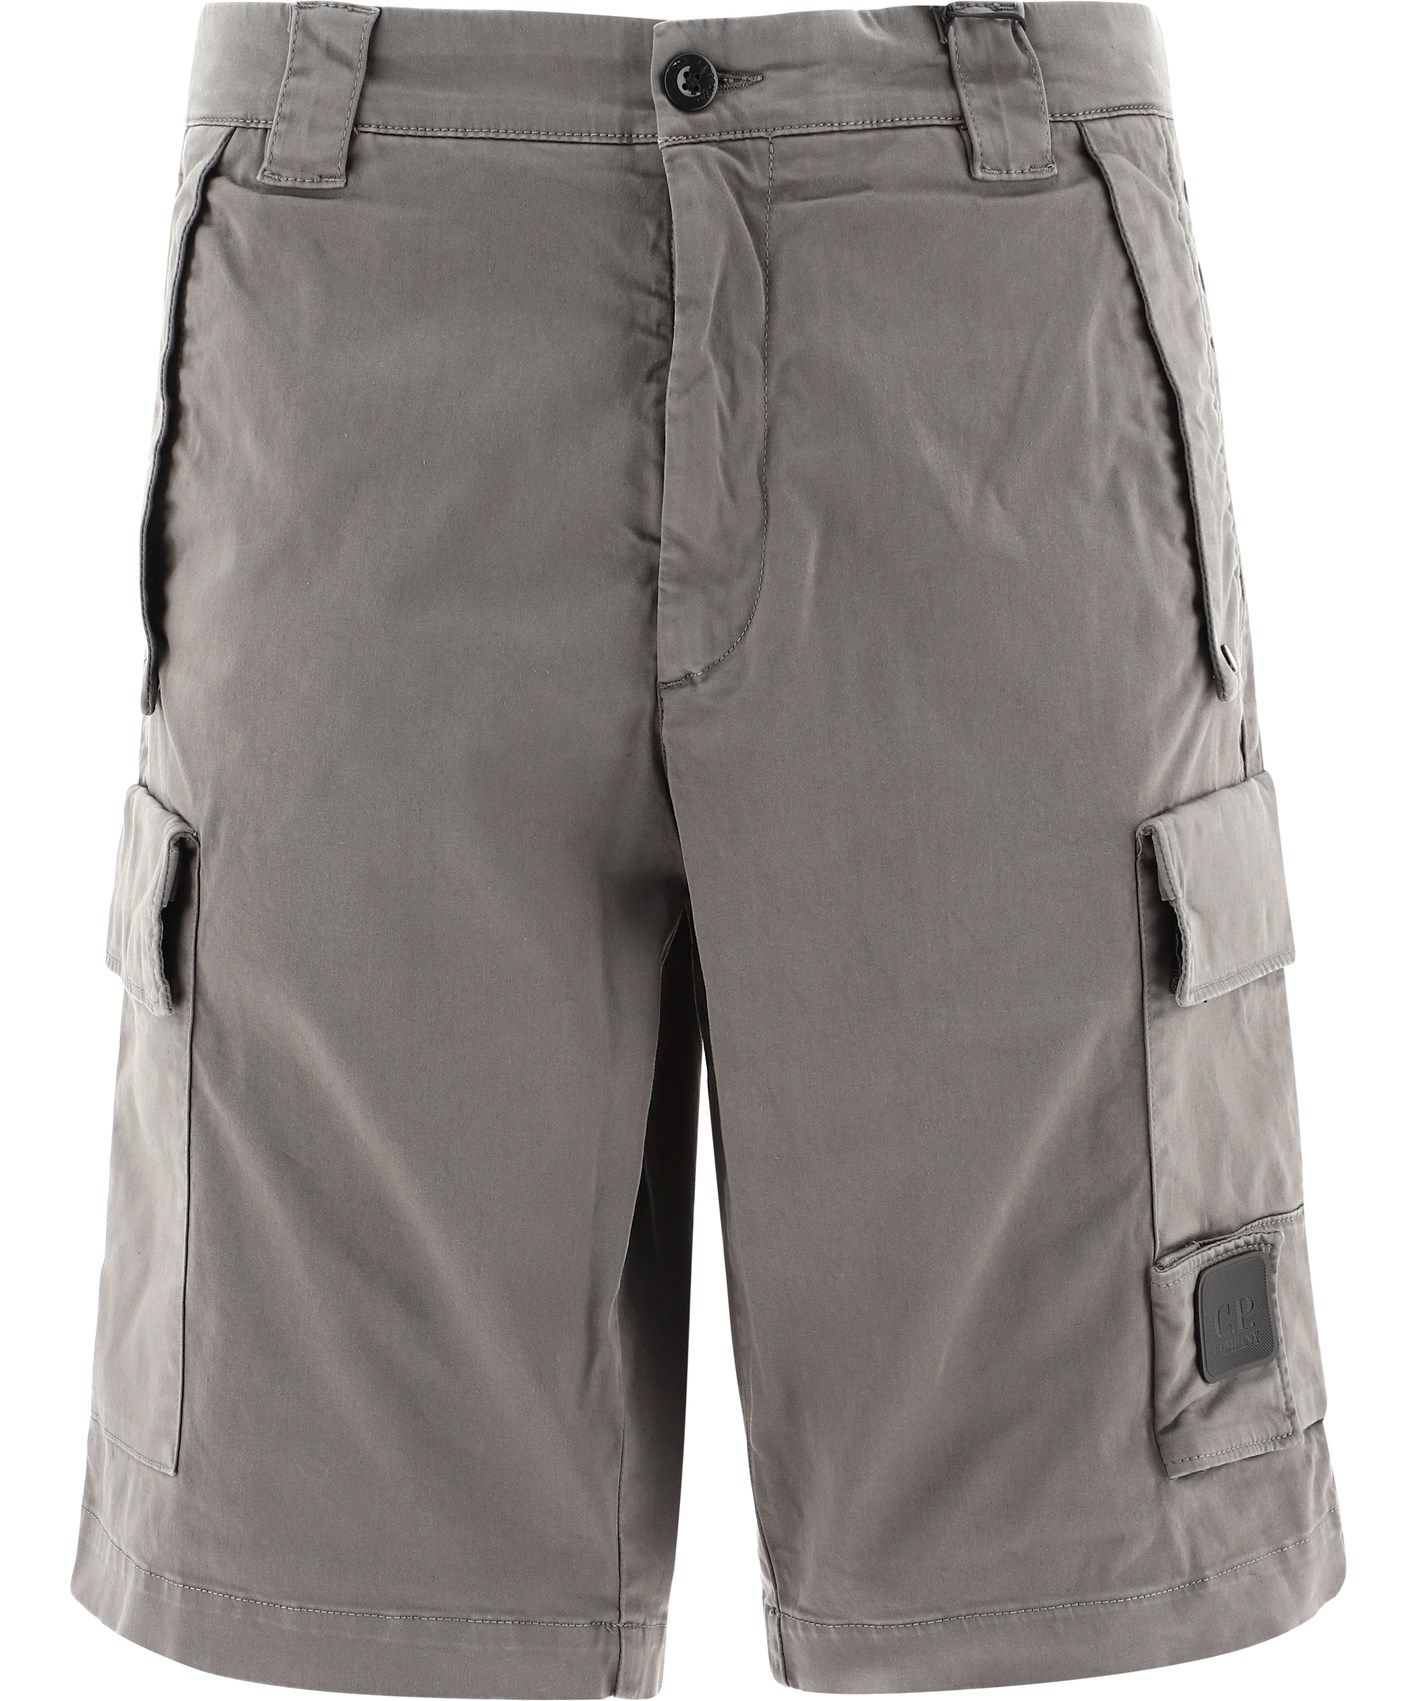 C.p. Company CP COMPANY MEN'S 10CMBE160A005694G938 GREY OTHER MATERIALS SHORTS